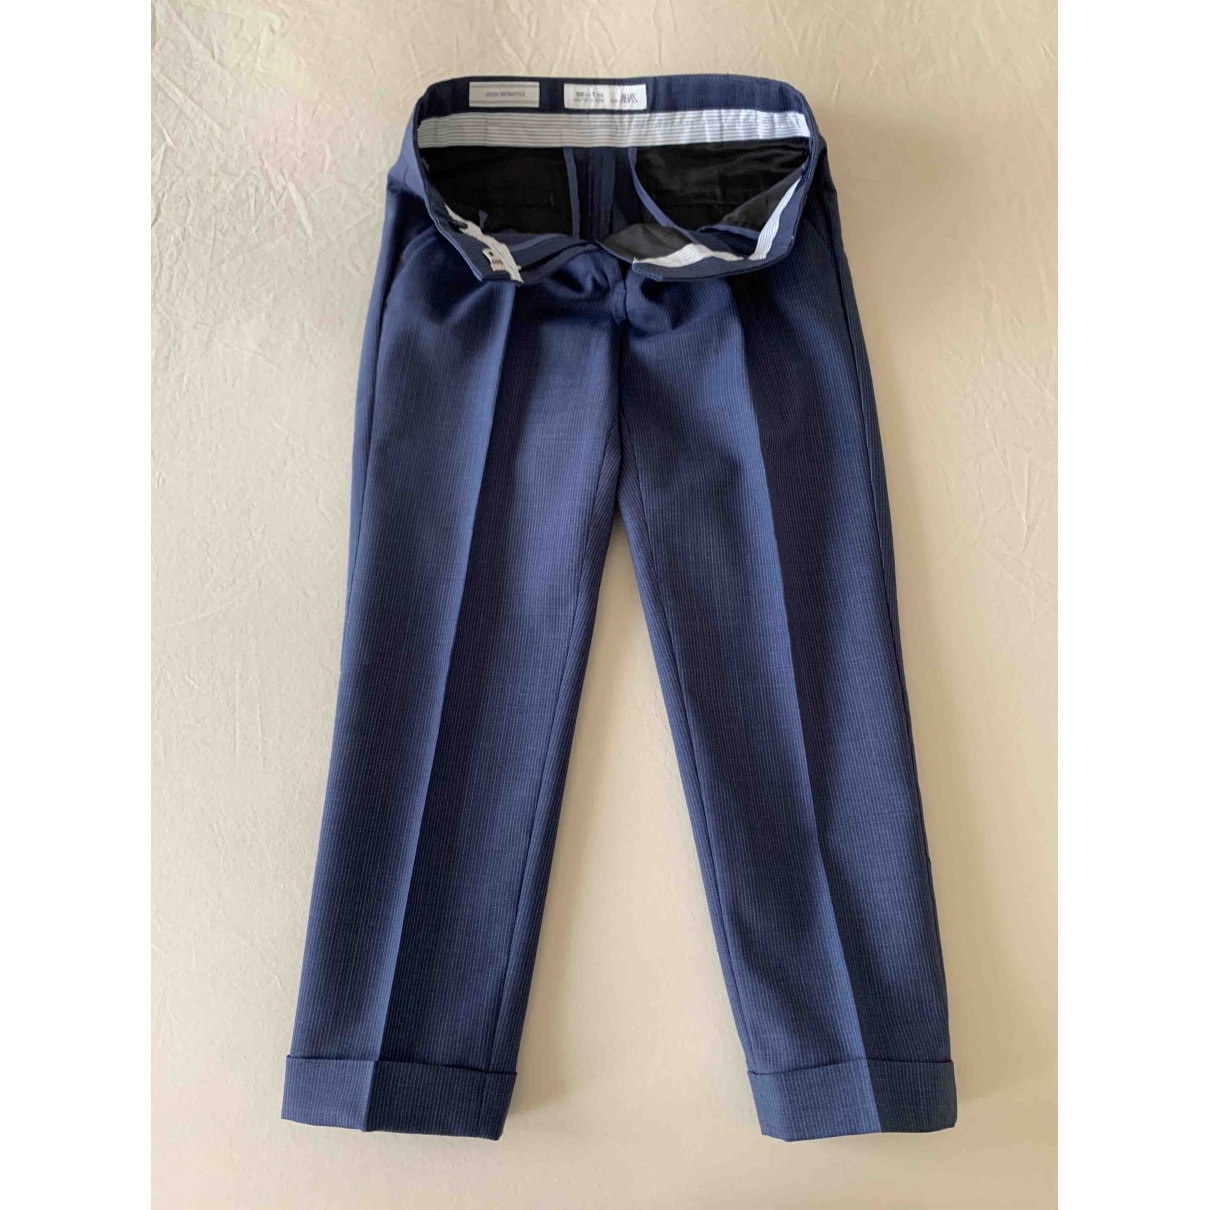 Zara \N Blue Wool Trousers for Kids 8 years - up to 128cm FR